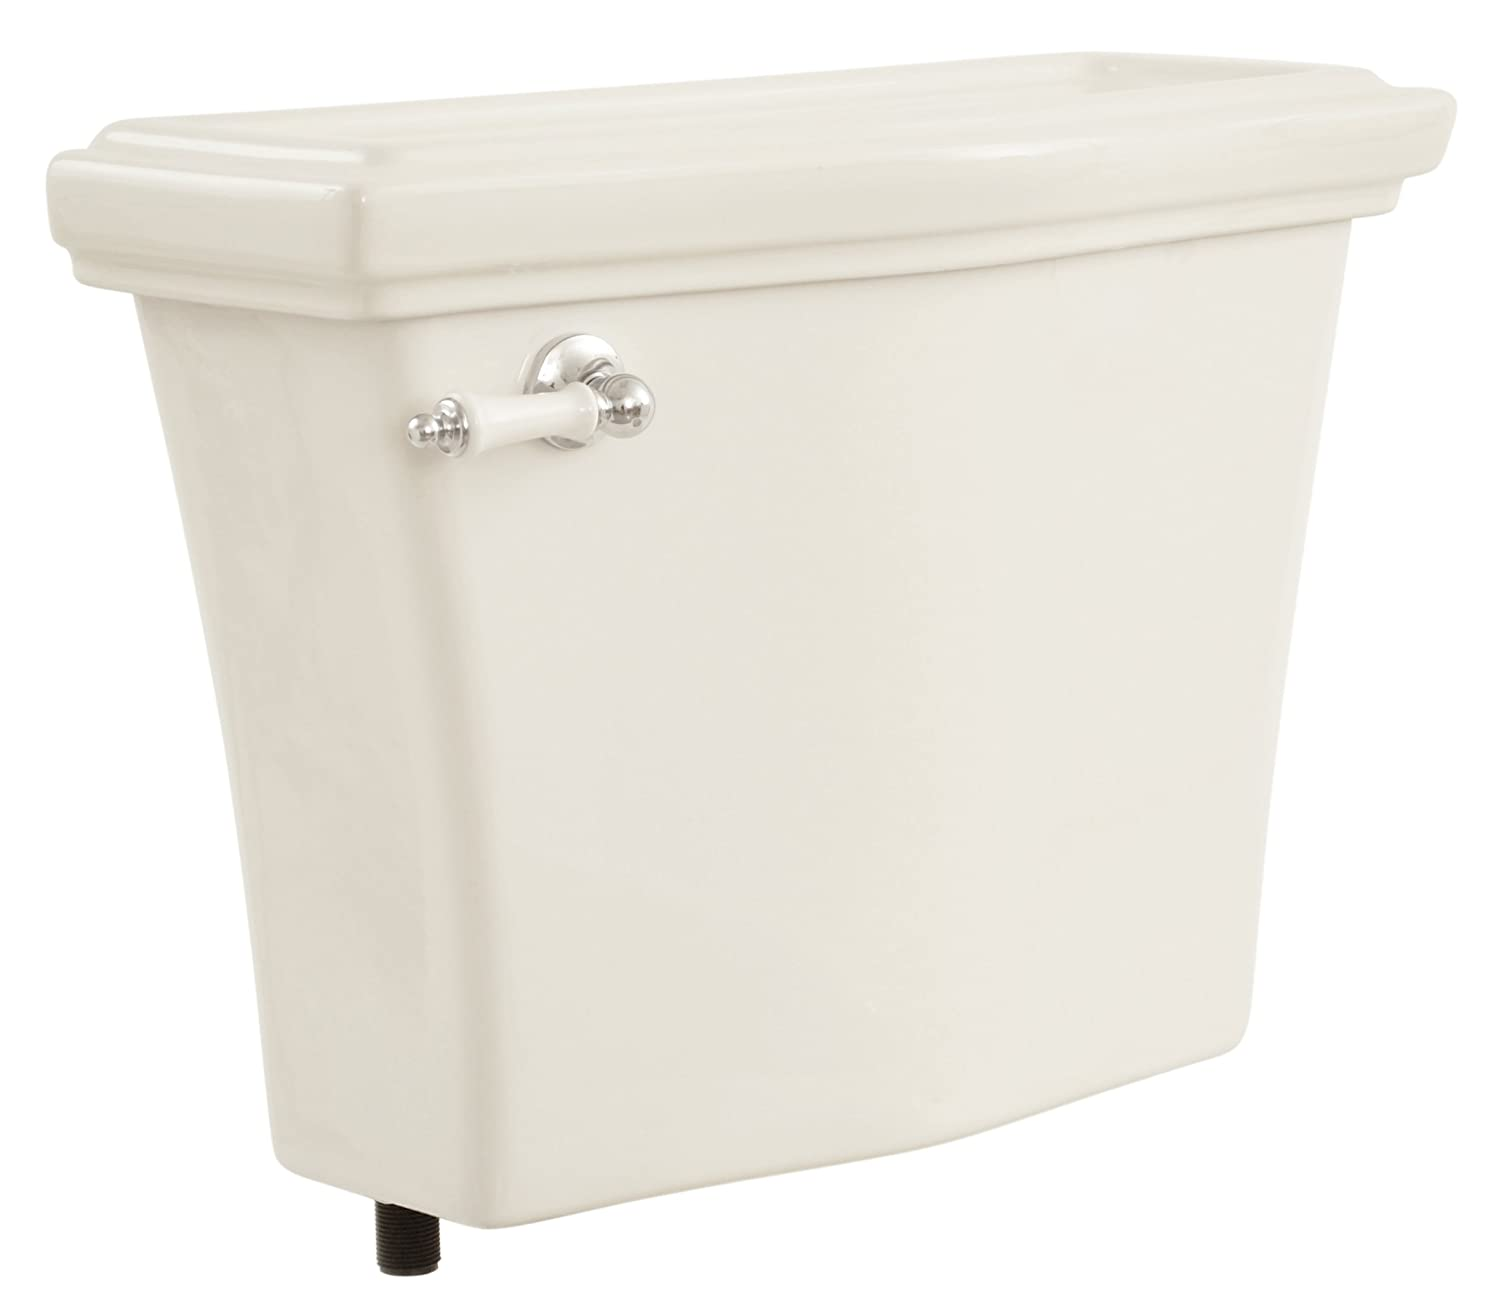 TOTO ST784S#01 Clayton Tank with G-Max Flushing System, Cotton White (Tank Only)